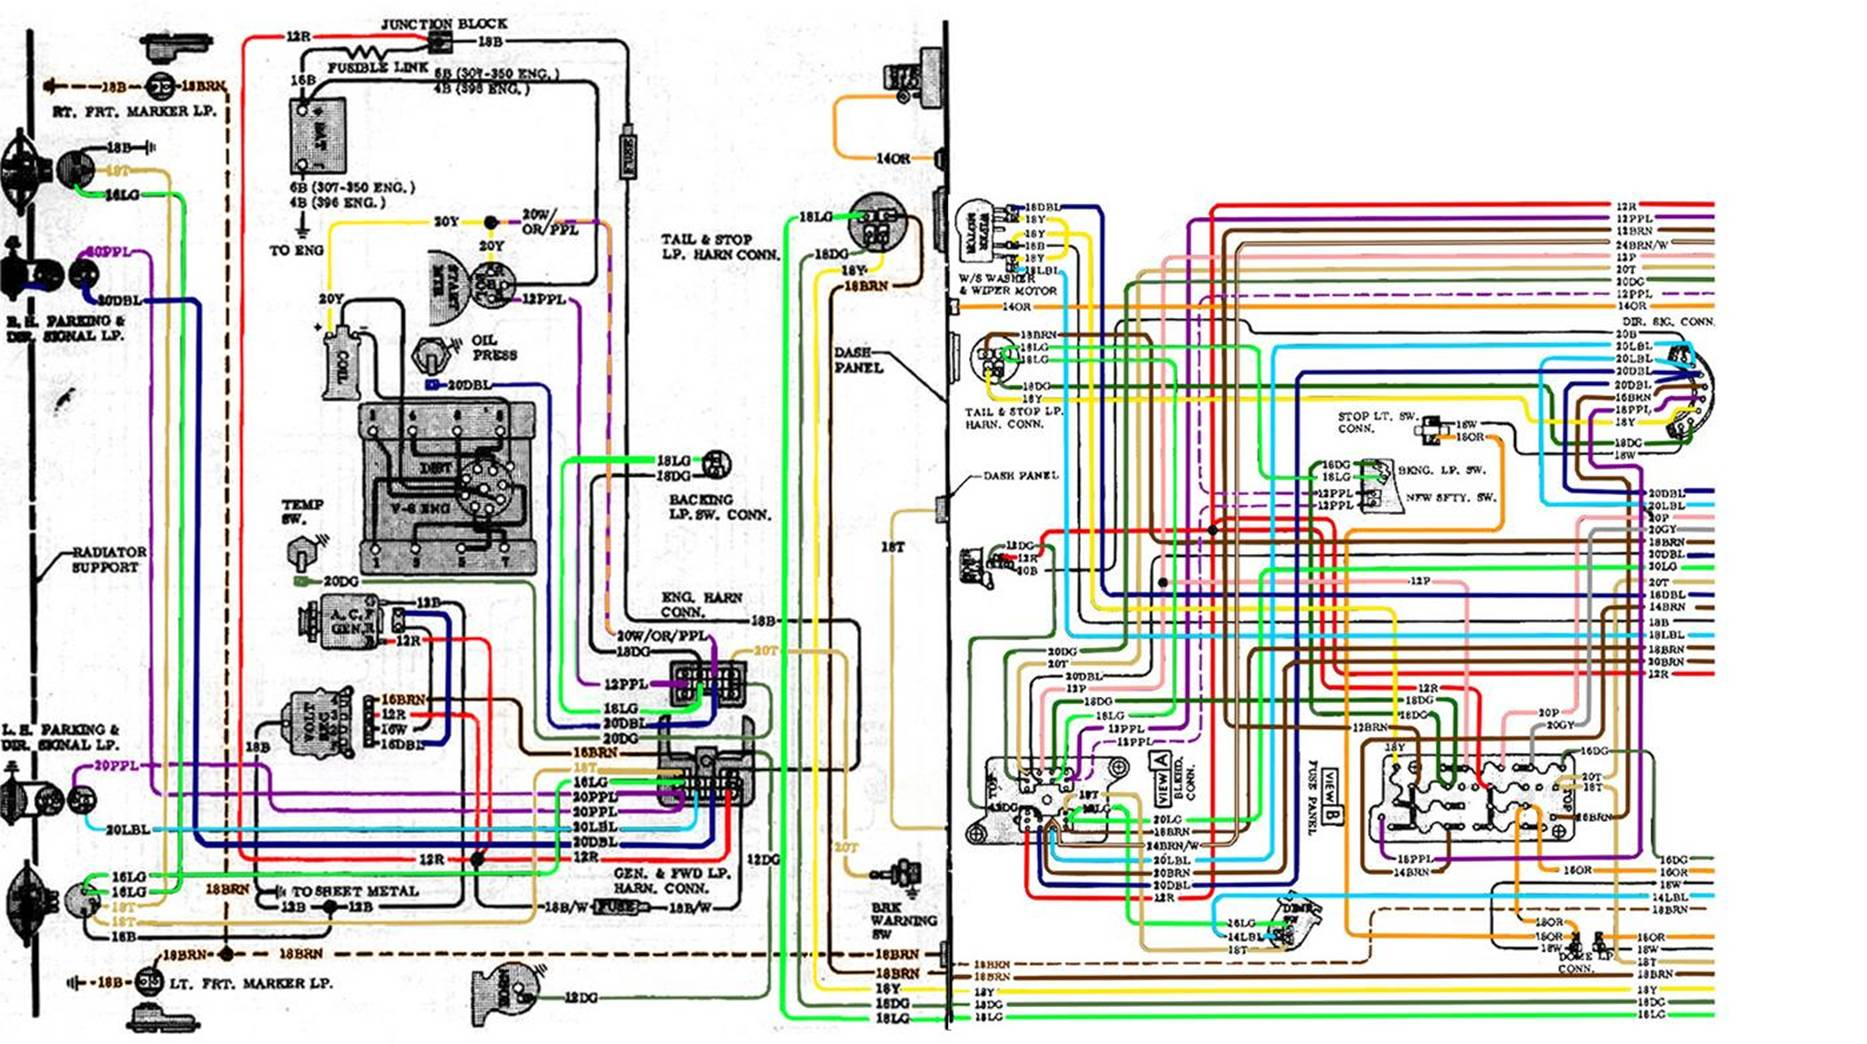 1969 Chevelle Starter Wiring Everything About Diagram 67 Camaro Windshield Wiper 66 Malibu Wire Library Rh 85 Codingcommunity De 1968